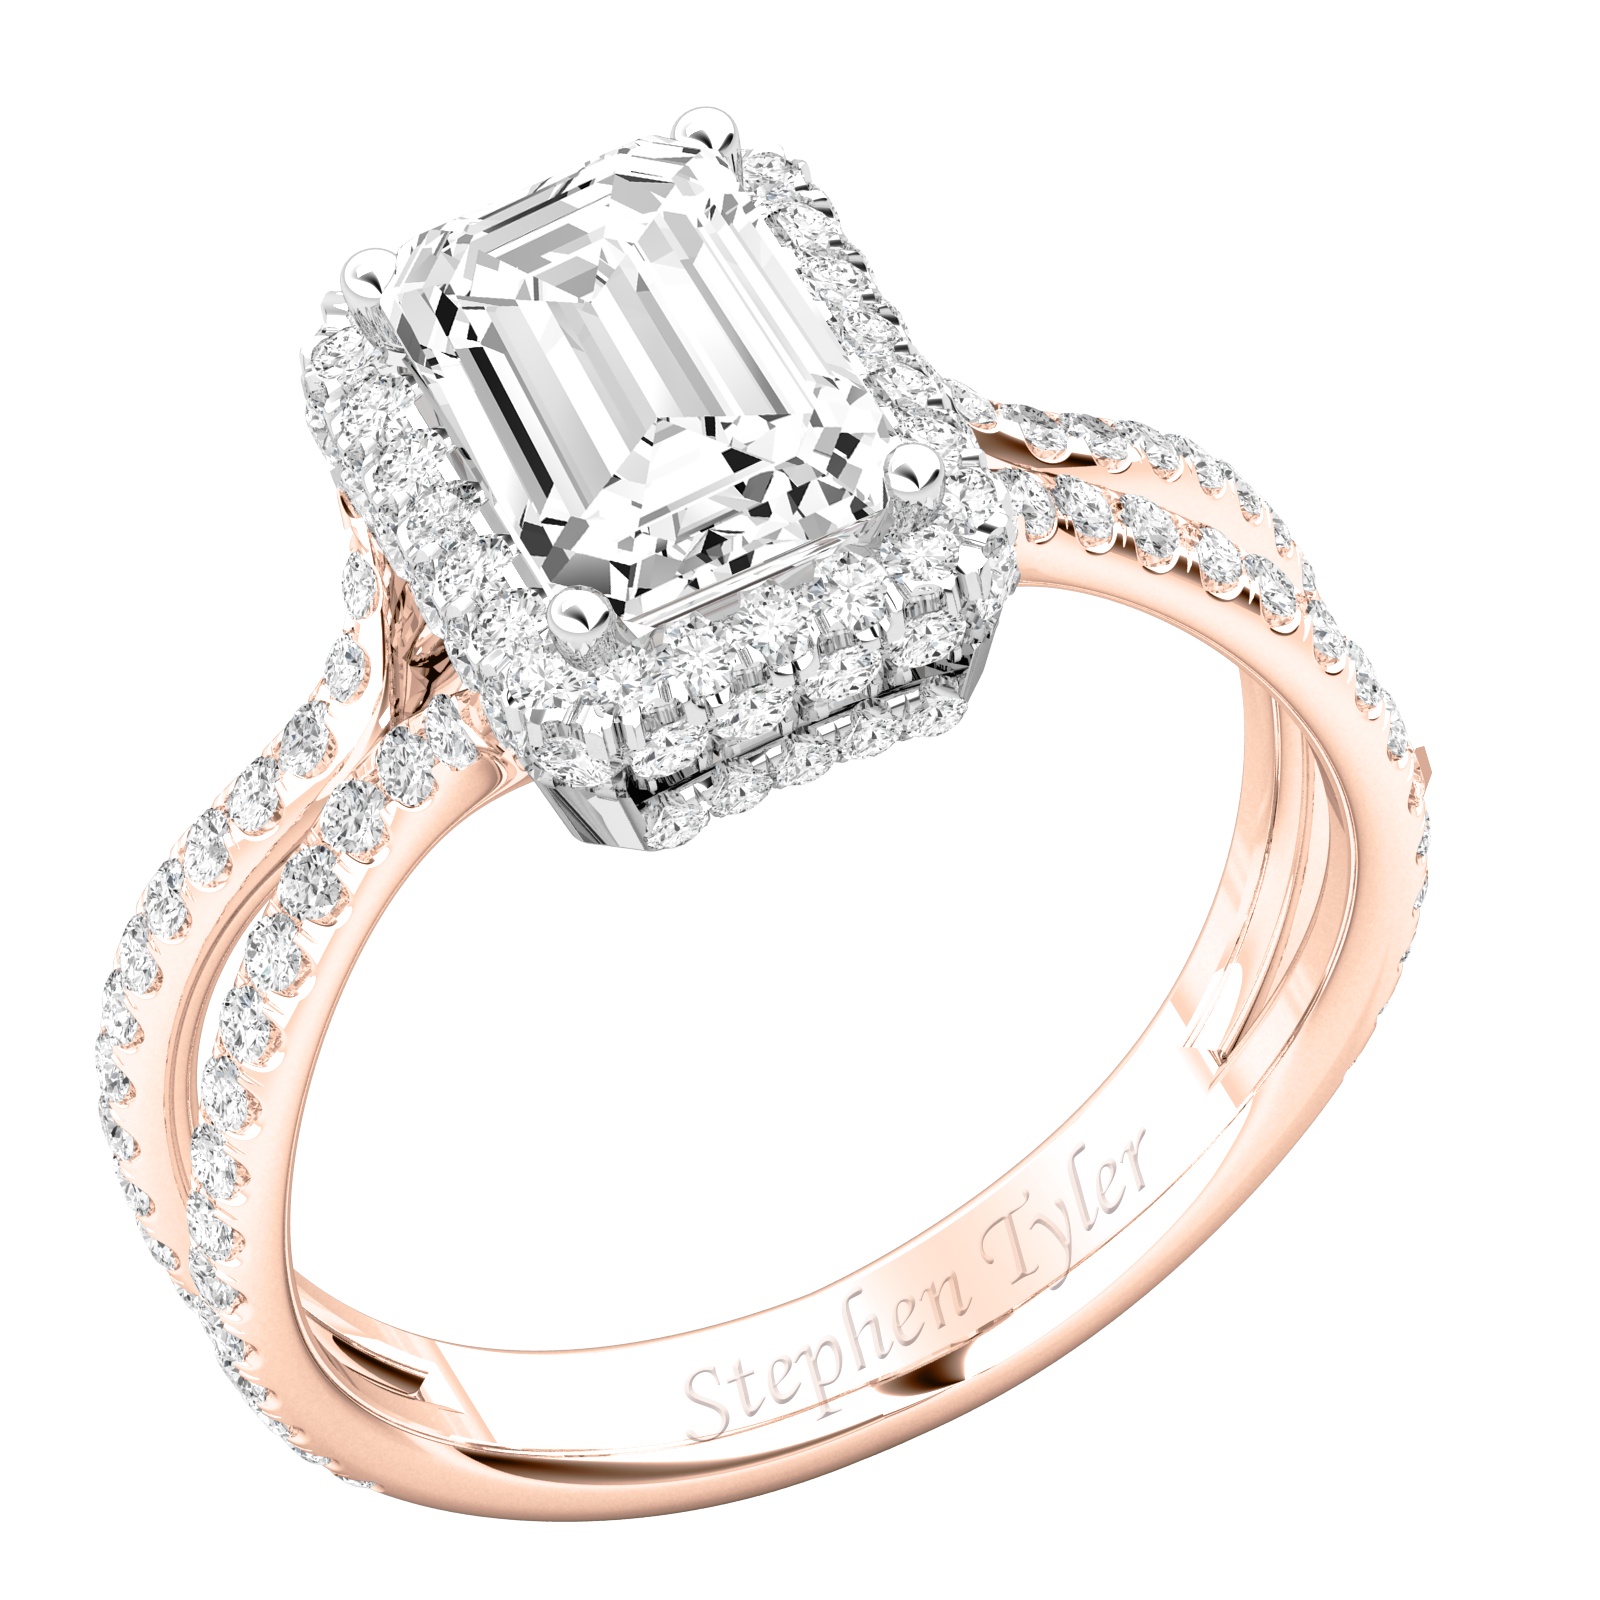 Purely Moonlight Emerald Cut For Evermore PDX892RPL